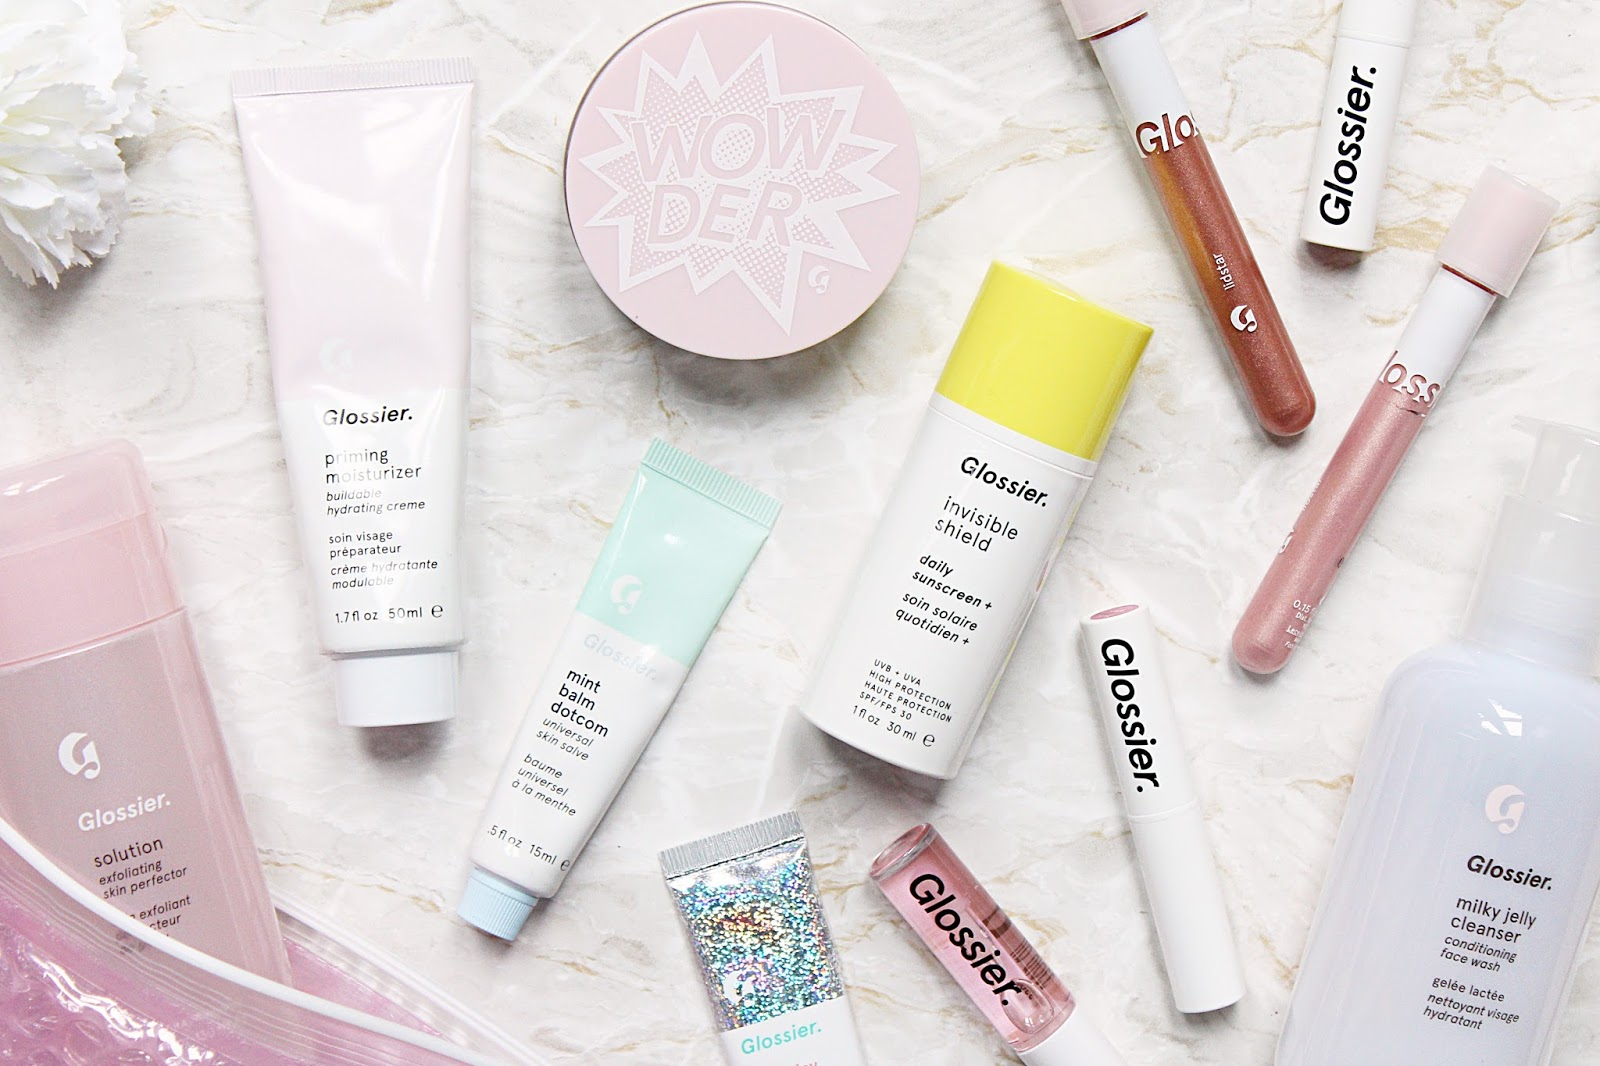 Glossier Makeup & Skincare Recommendations